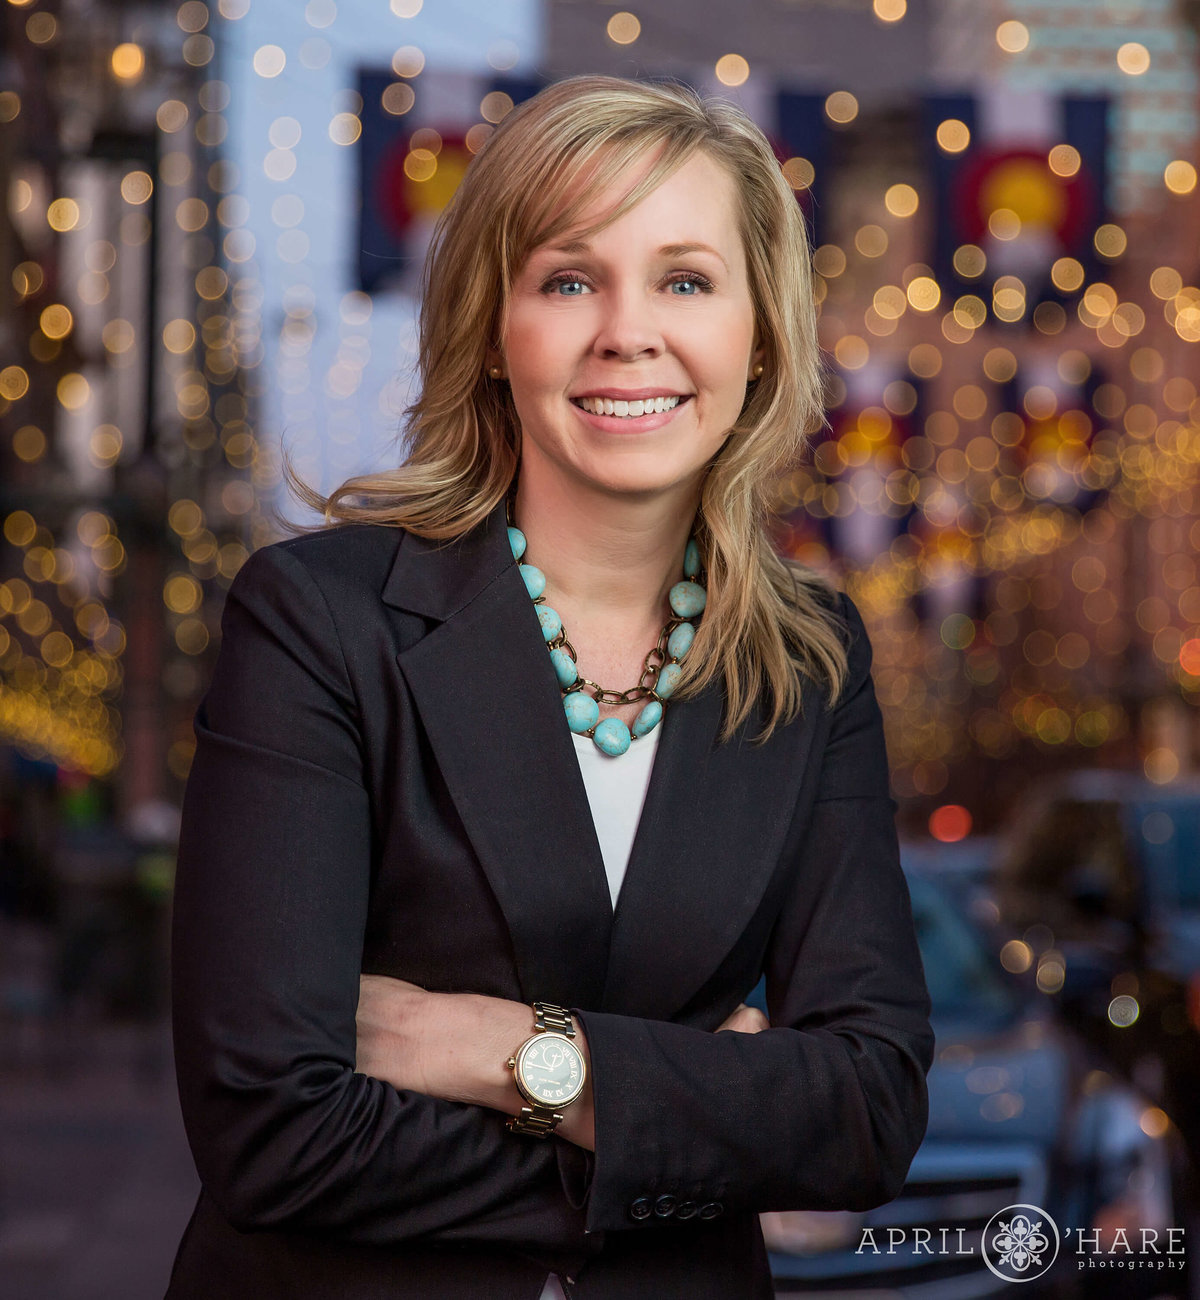 Colorado-On-Location-Business-Portrait-Headshots-in-Denver